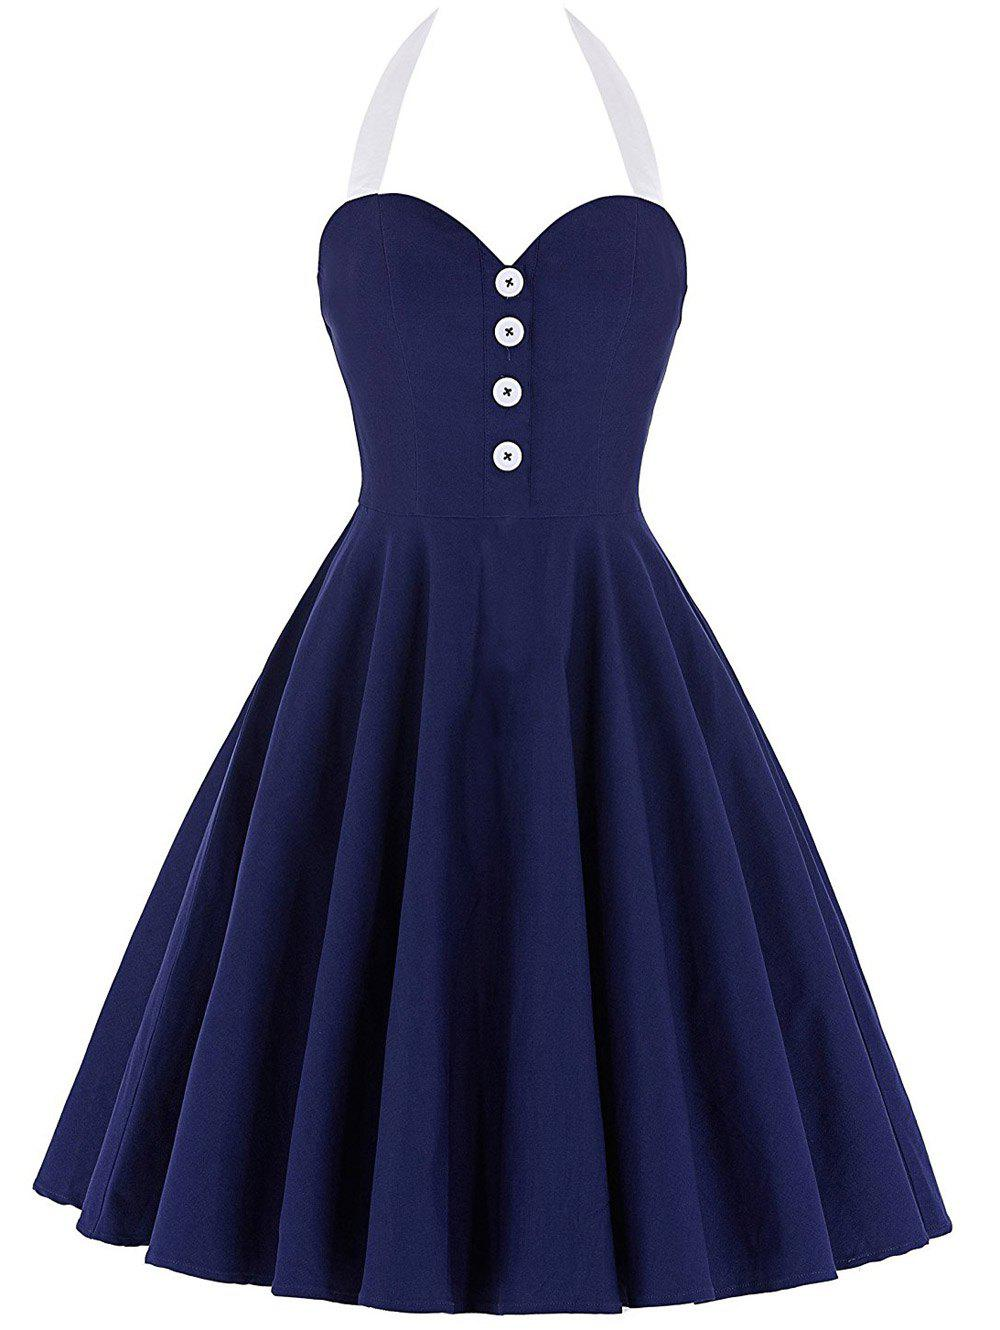 Cocktail Halter Backless Mini Pin Up Dress - BLUE S